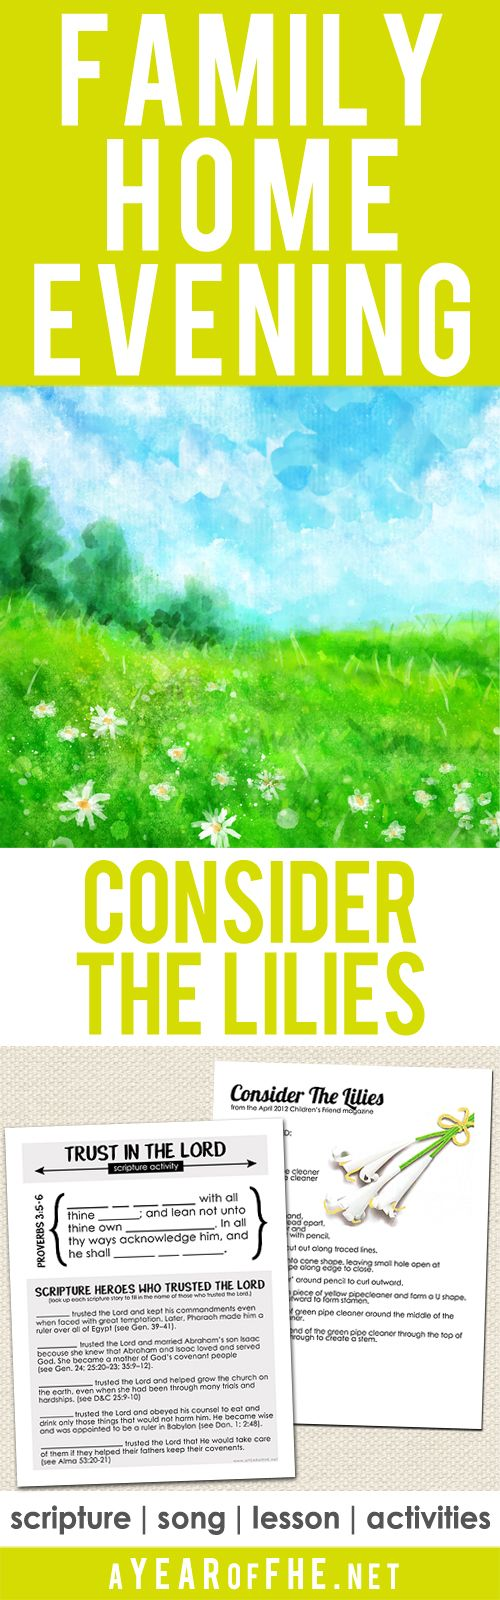 A great Family Home Evening lesson about TRUSTING IN THE LORD using the parable of the Lilies of the Field from the Sermon on the Mount. Includes a scripture, song, lesson and 2 activites! A craft for small children and a scripture fill-in for older kids and teens! Your FHE is ready...just CLICK, PRINT, and TEACH! #fhe #lds #aYEARofFHE